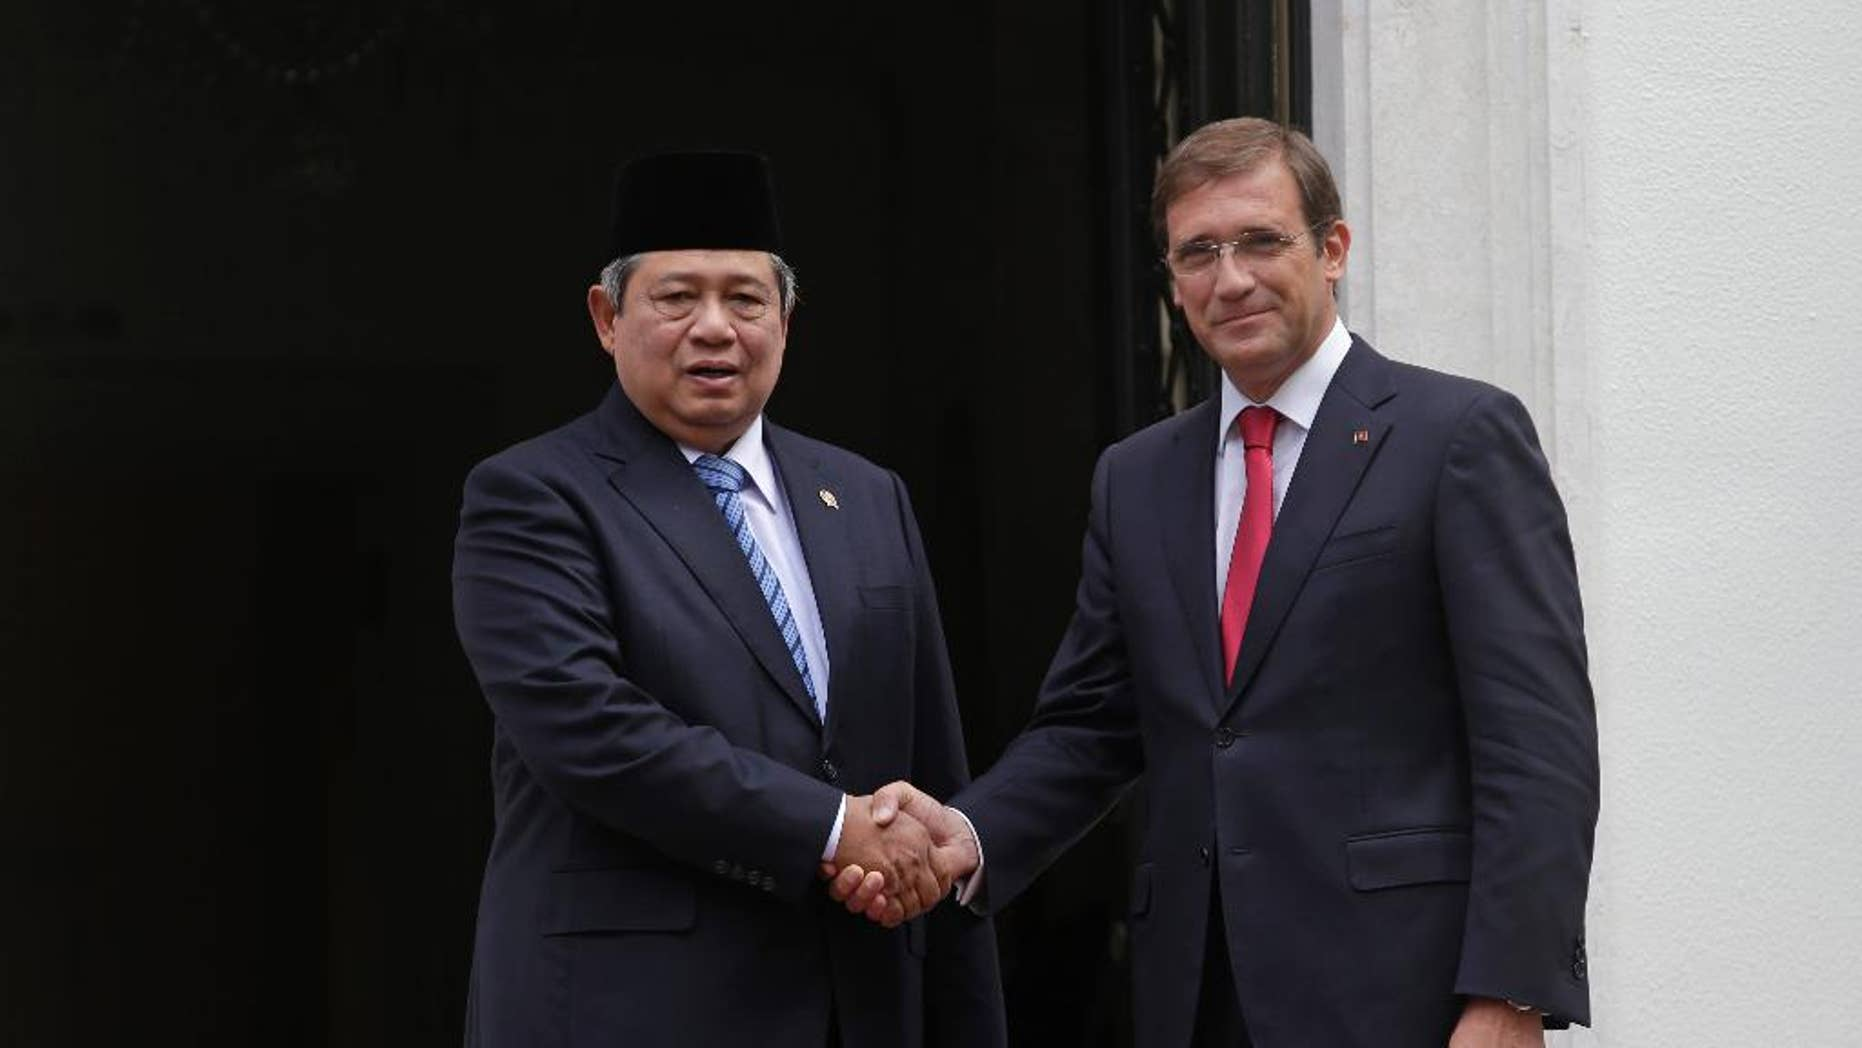 Indonesia's President Susilo Bambang Yudhoyono, left, shakes hands for the media with the Portuguese Prime Minister Pedro Passos Coelho before their meeting at the Sao Bento palace, the premier's official resident, in Lisbon, Friday, Sept. 19, 2014. The one day state visit of Yudhoyono was the first that an Indonesian President paid to Portugal since 1960. Bilateral relations between the two countries were severed during years after Indonesia annexed in 1975 East Timor, a former Portuguese colony. (AP Photo/Francisco Seco)